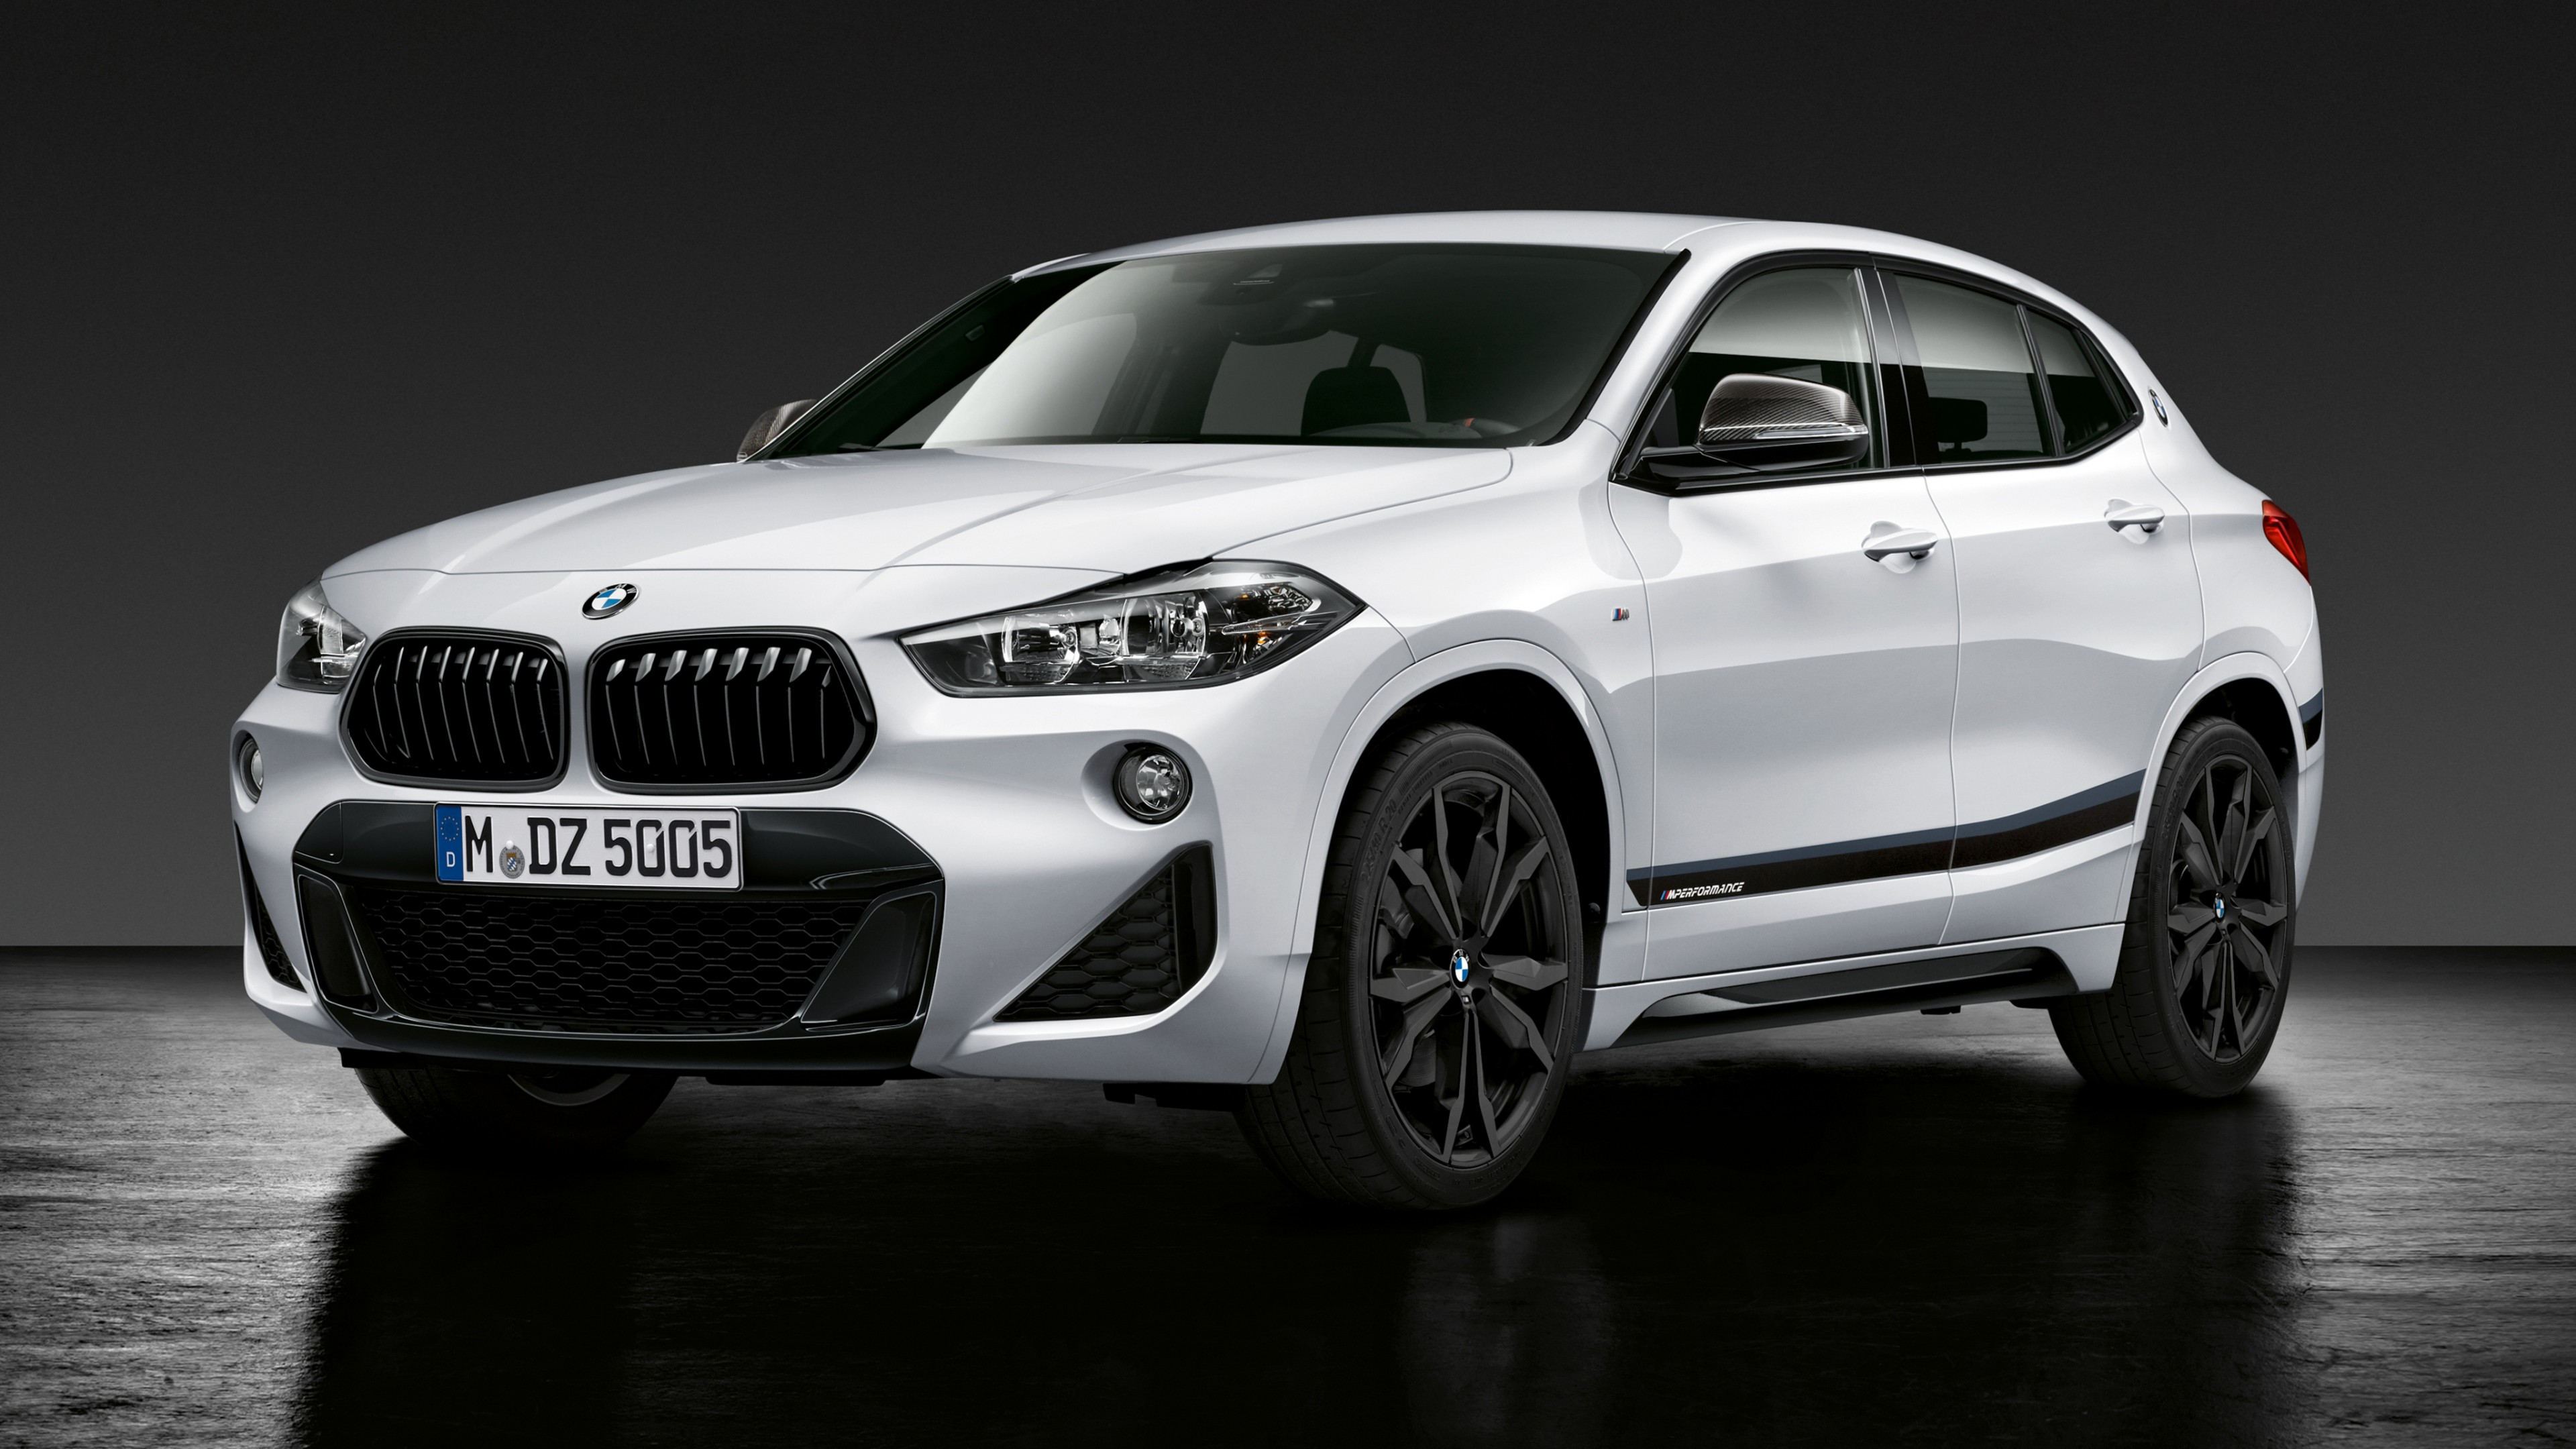 2018 bmw x2 m performance parts 4k wallpaper hd car wallpapers id 9907. Black Bedroom Furniture Sets. Home Design Ideas